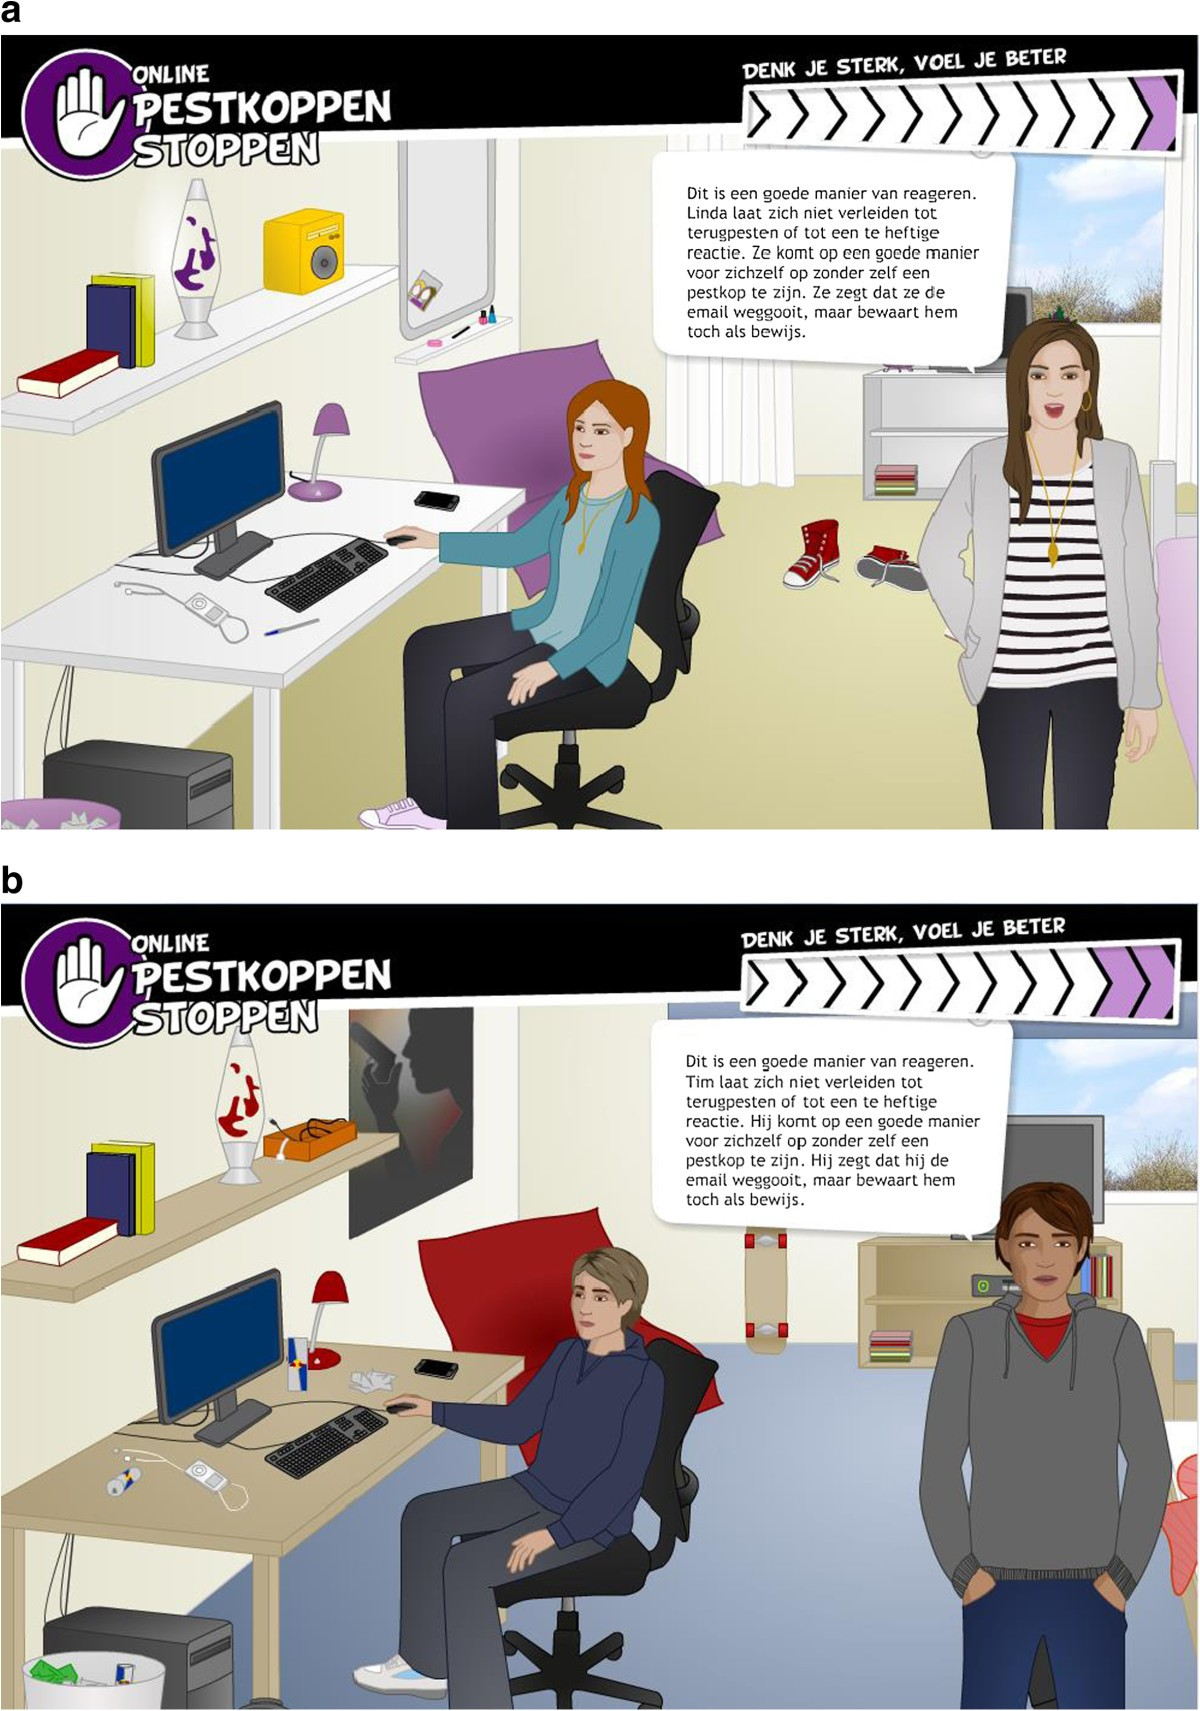 Online Pestkoppenstoppen: systematic and theory-based development of on office cubicles, office computers, office stools, office desks, office tables, office pens, office trash can, office reception, office lobby, office footrest, office lamps, office furniture, office beds, office counters, office bookcases, office sofa sets, office kitchen, office accessories, office employees, office couch,